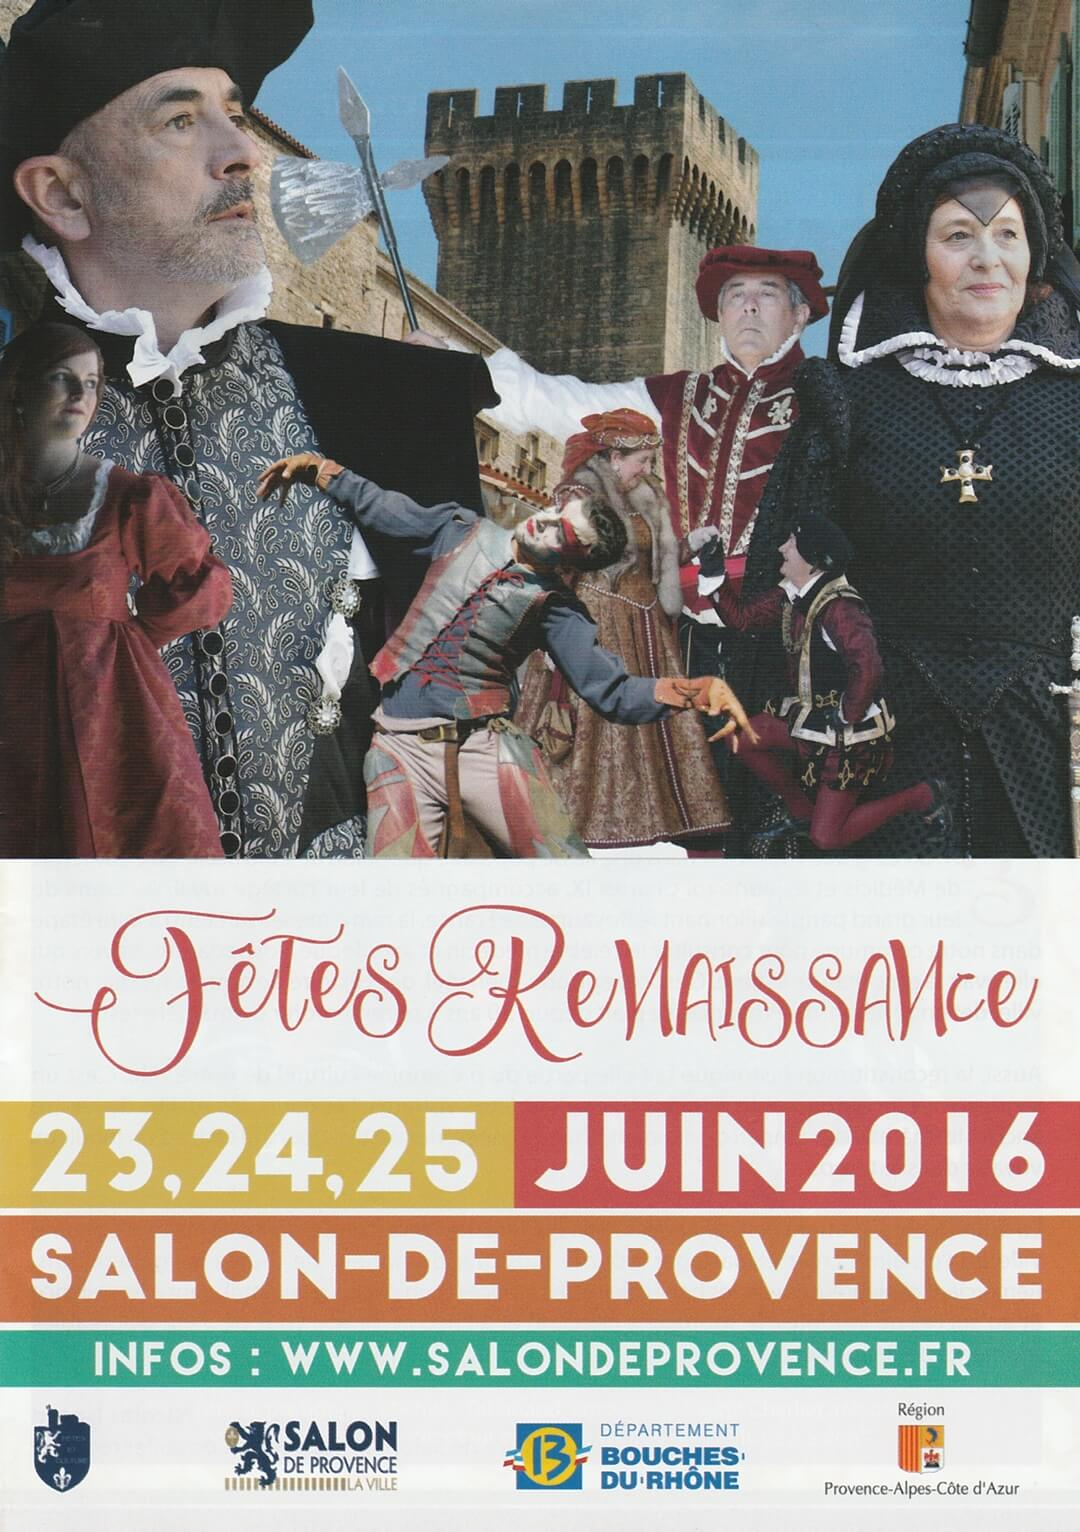 F tes renaissance reconstitution historique salon for Association l arche salon de provence